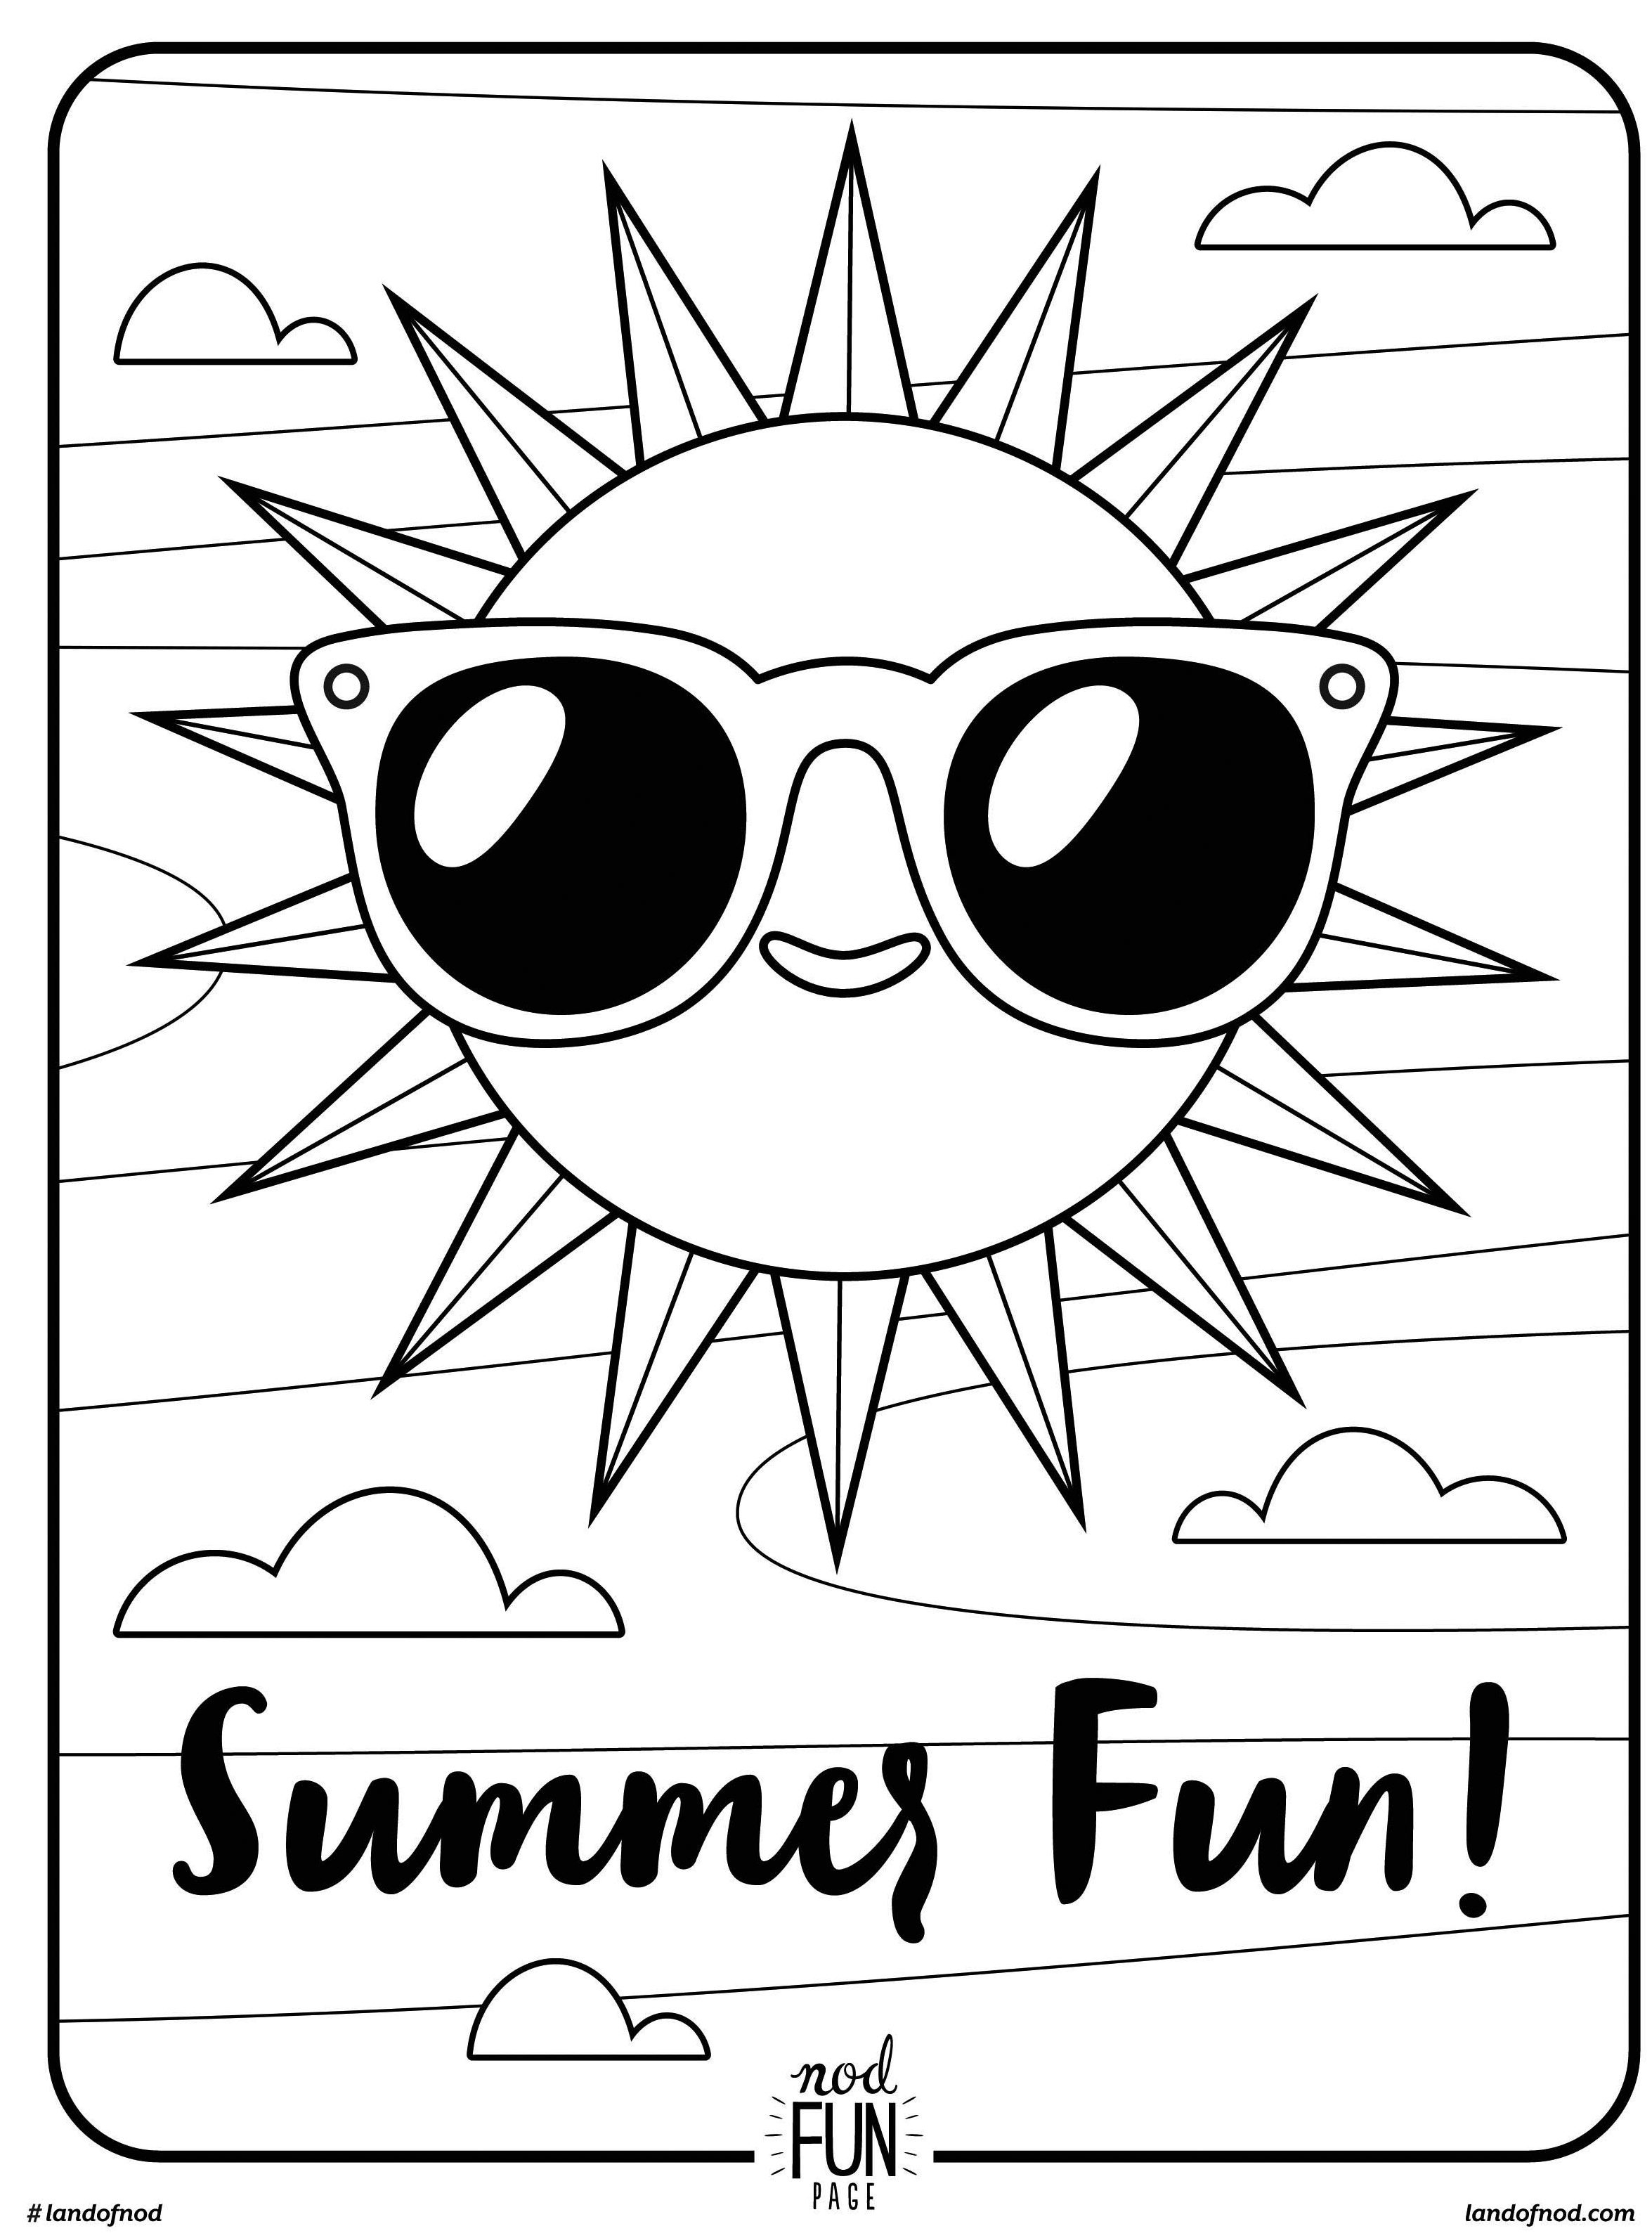 summer fun coloring pages - free printable coloring page summer fun